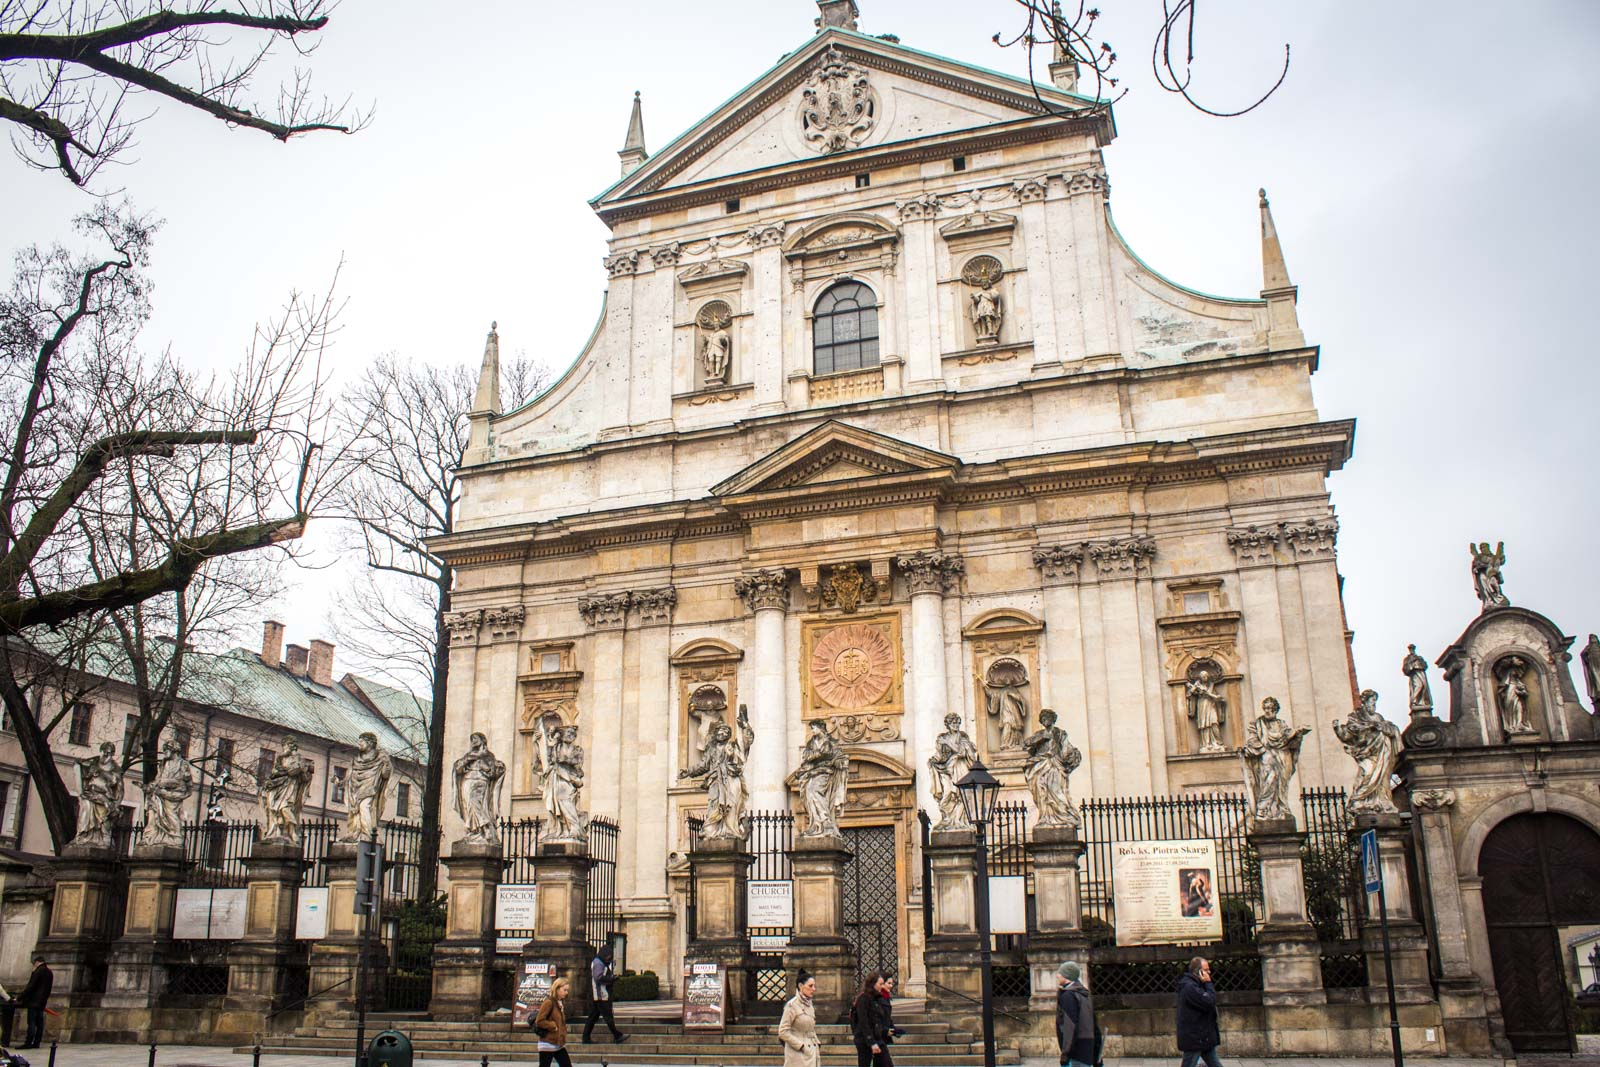 Things to do in Krakow, Poland